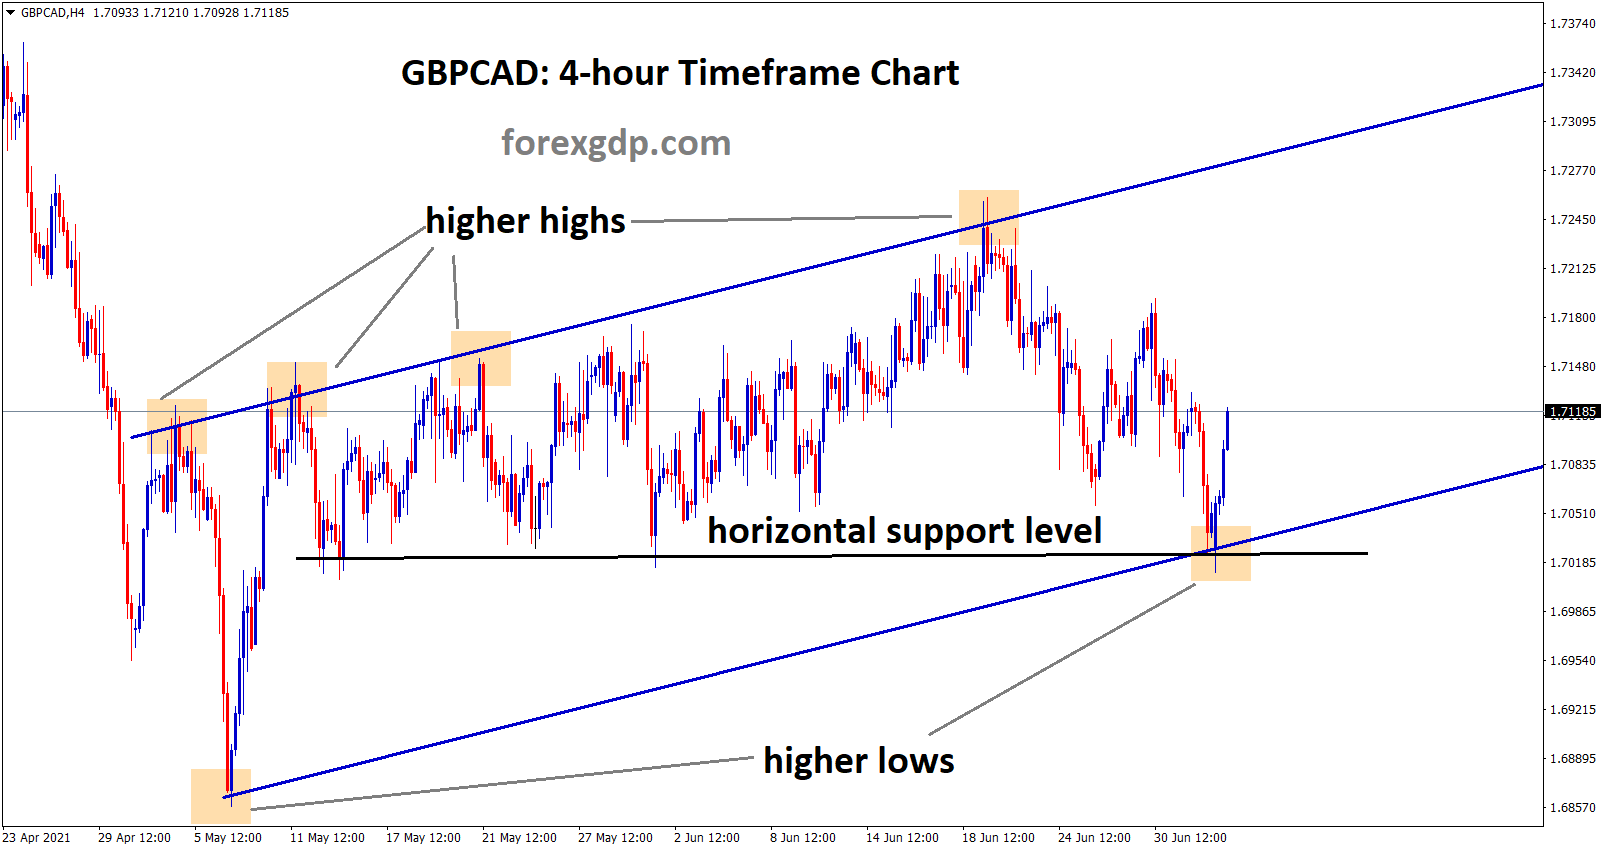 gbpcad bouncing back from the higher low and horizontal support line